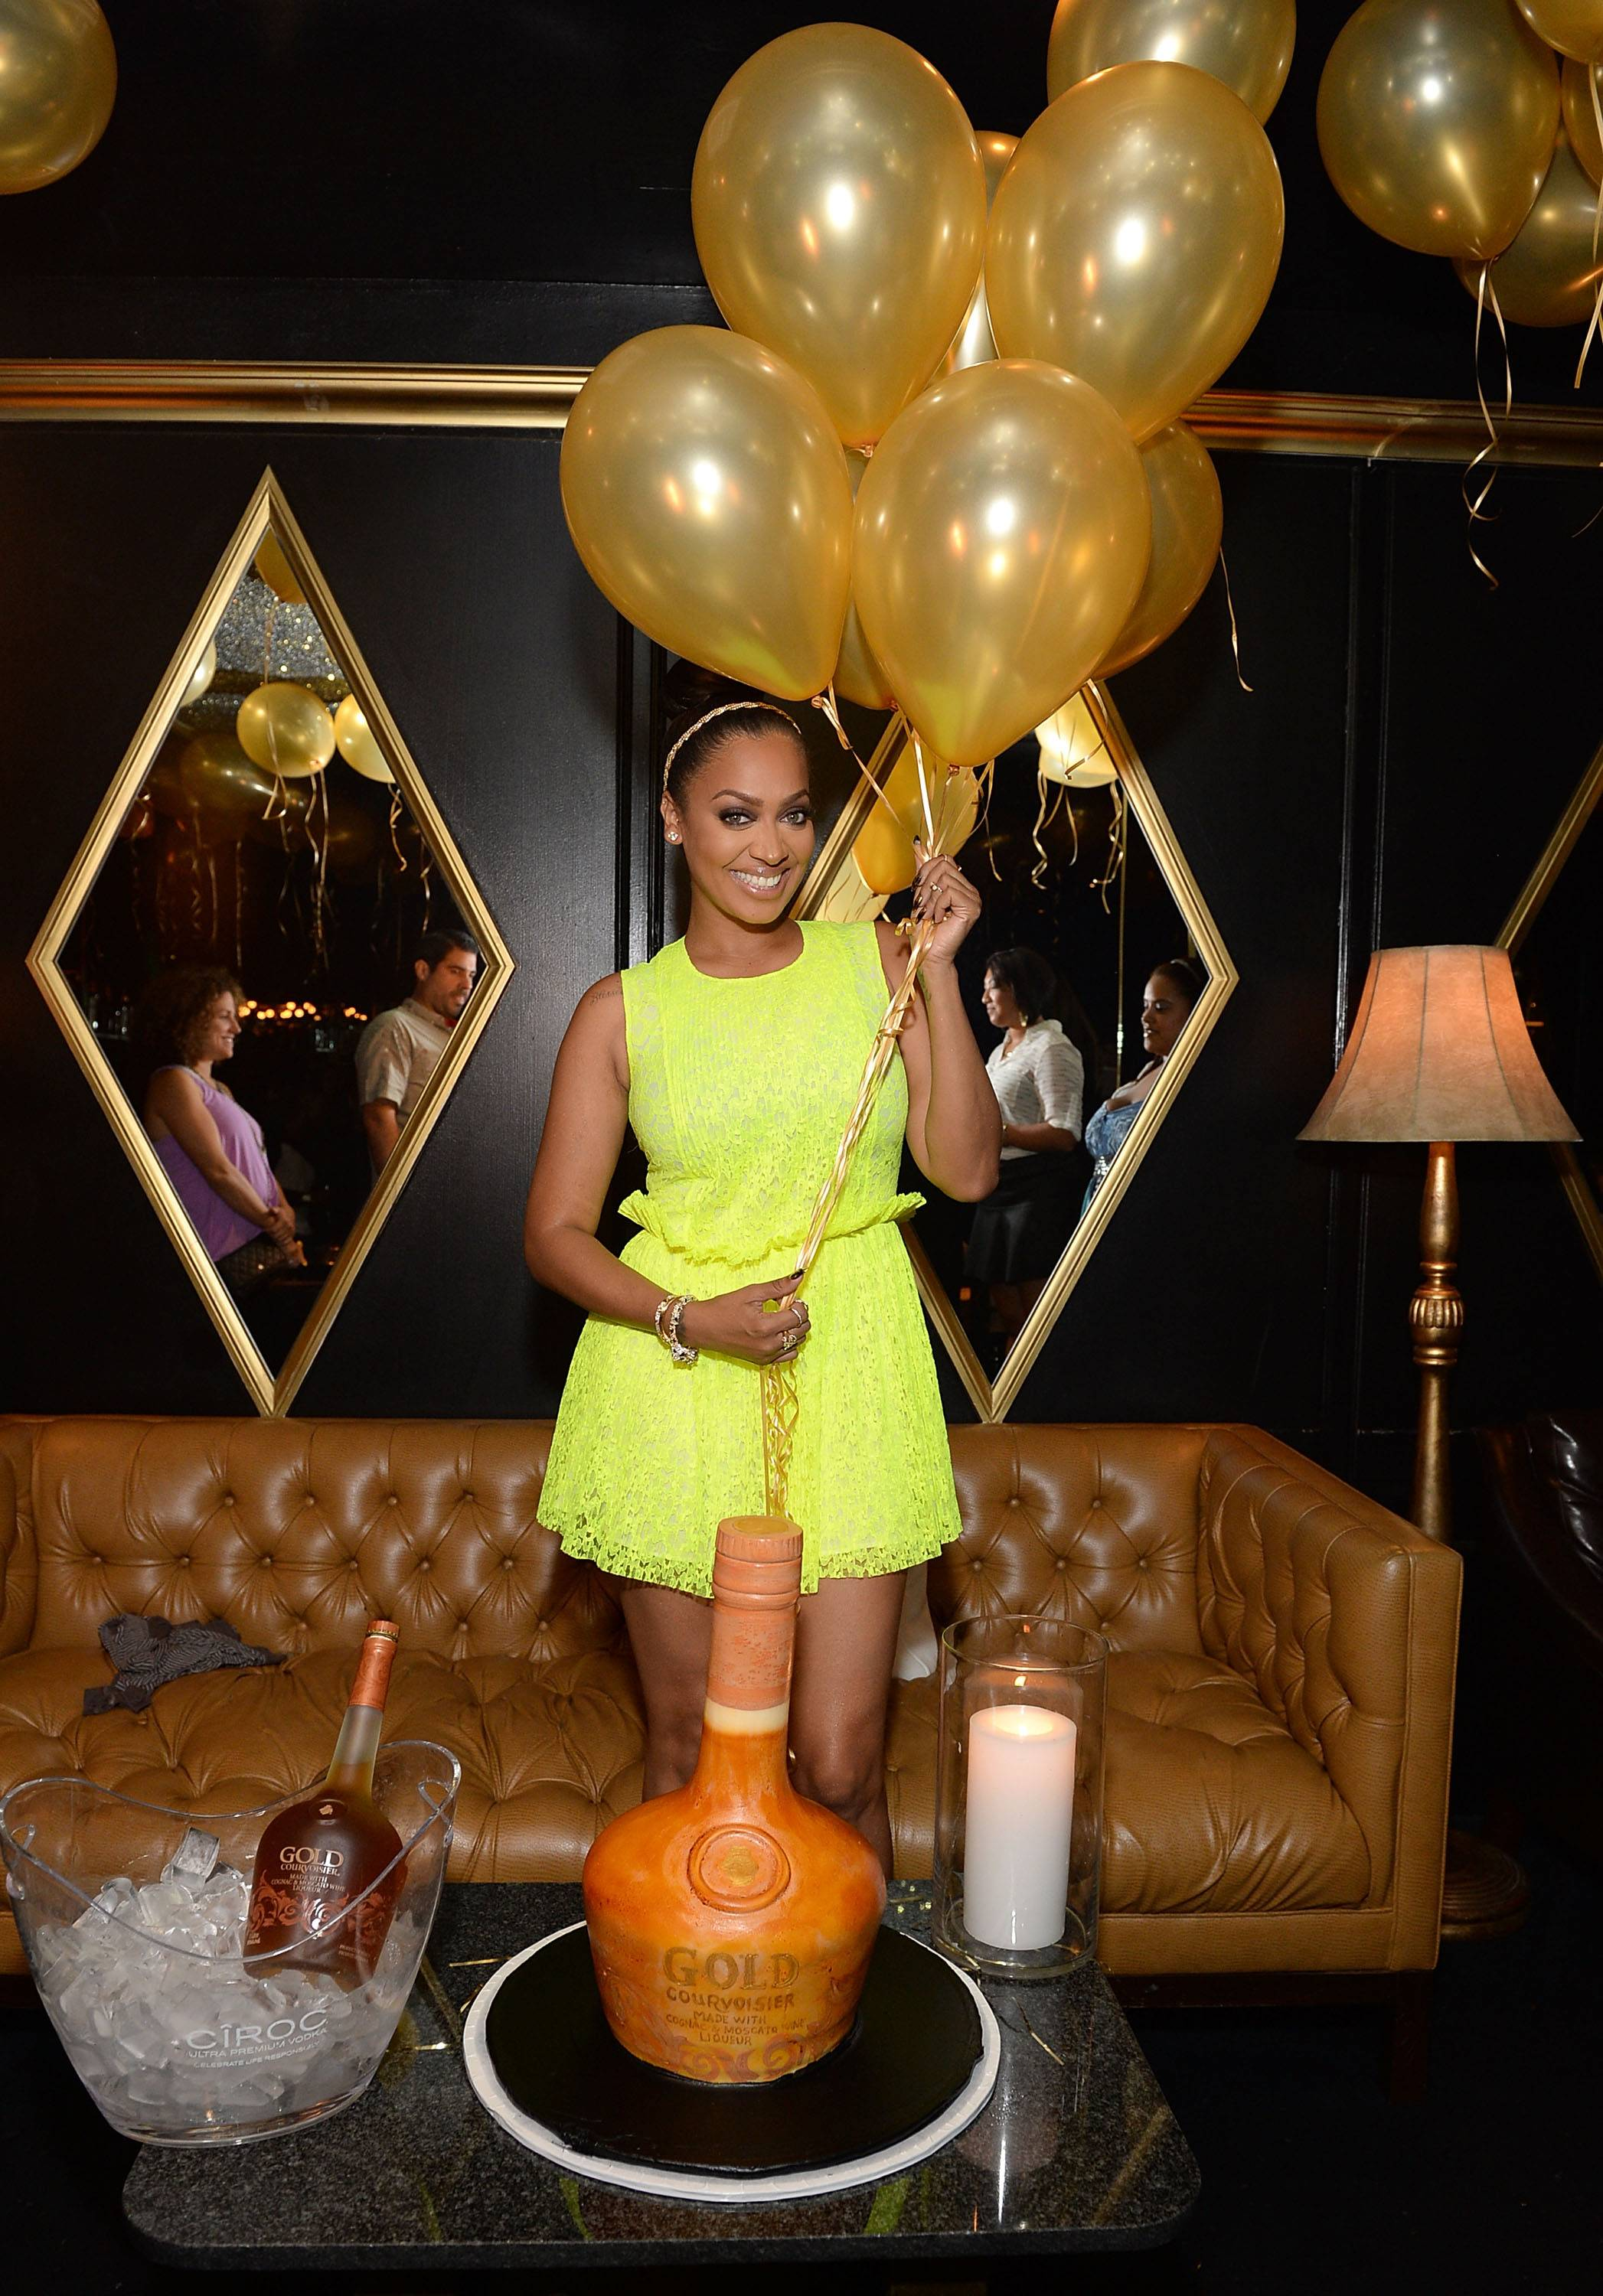 LaLa Anthony Celebrates One Year Anniversary Of Courvoisier Gold On August 22, 2013 At Bootsy Bellows In Los Angeles